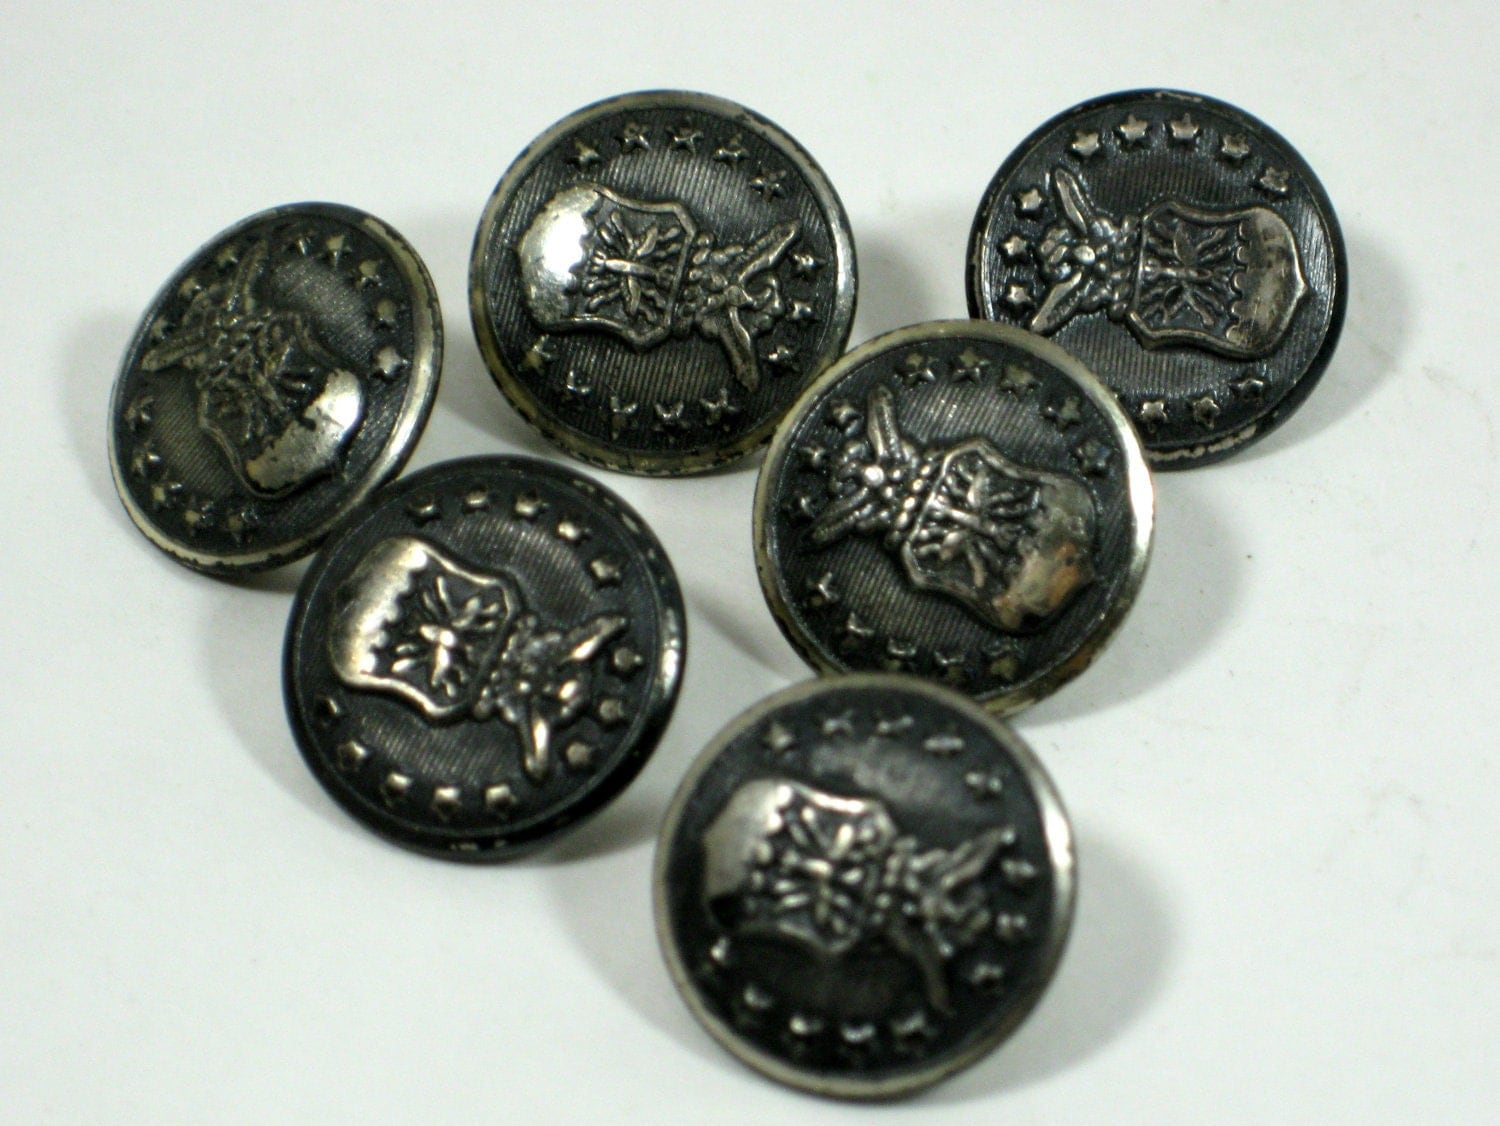 Vintage Military Buttons 84